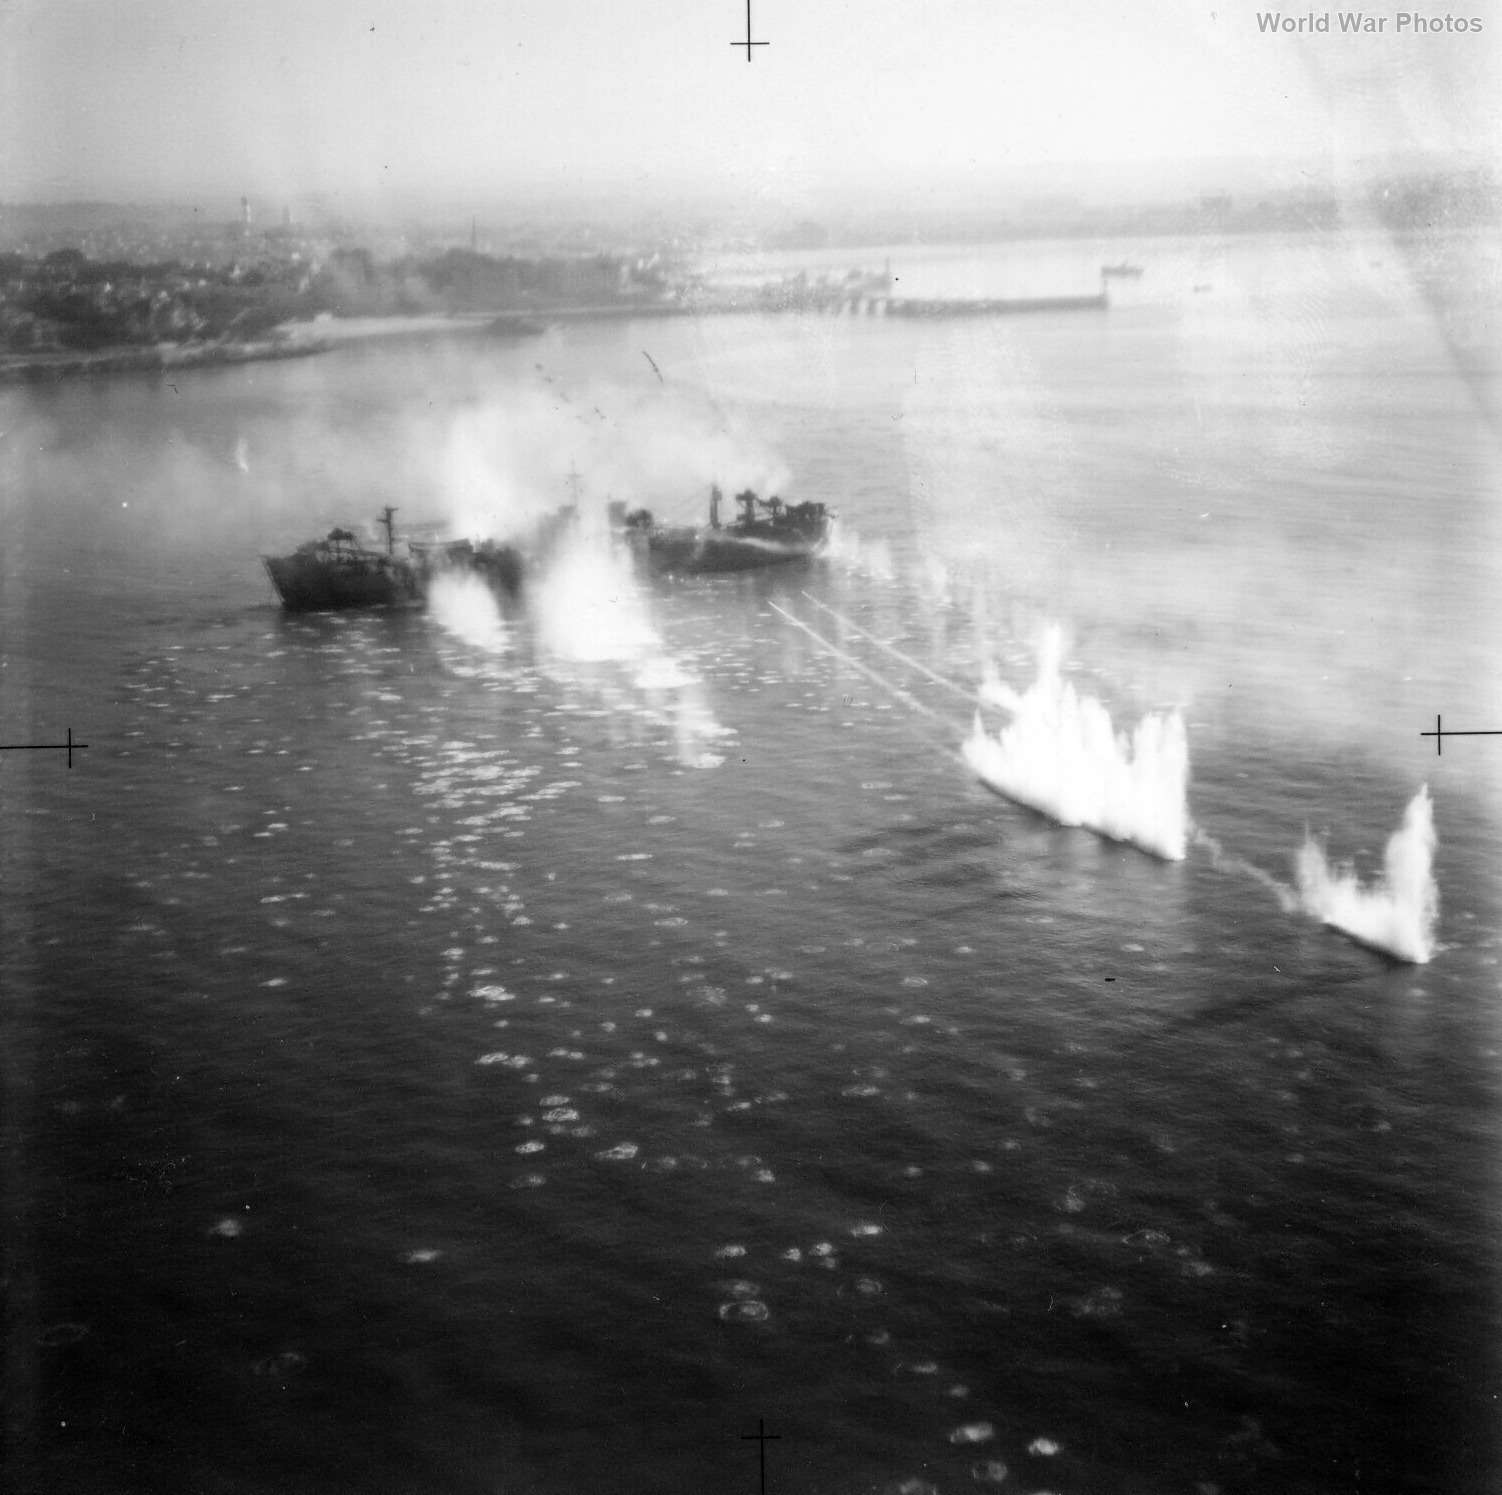 Beaufighter attack off Royan